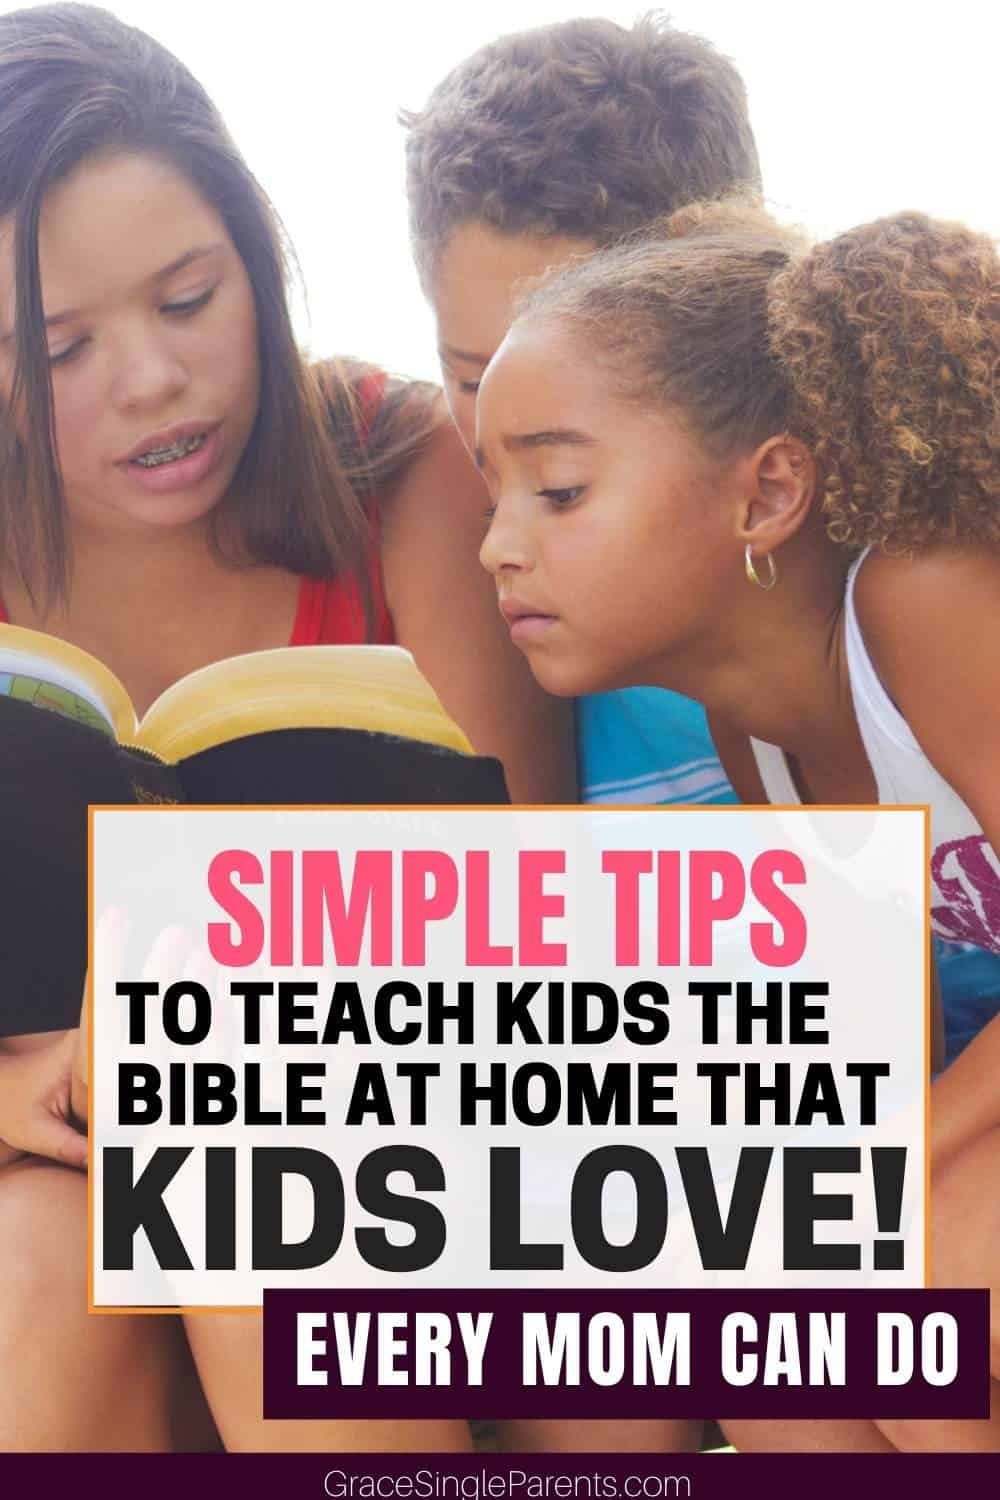 How to Easily Teach Your Kids the Bible at Home